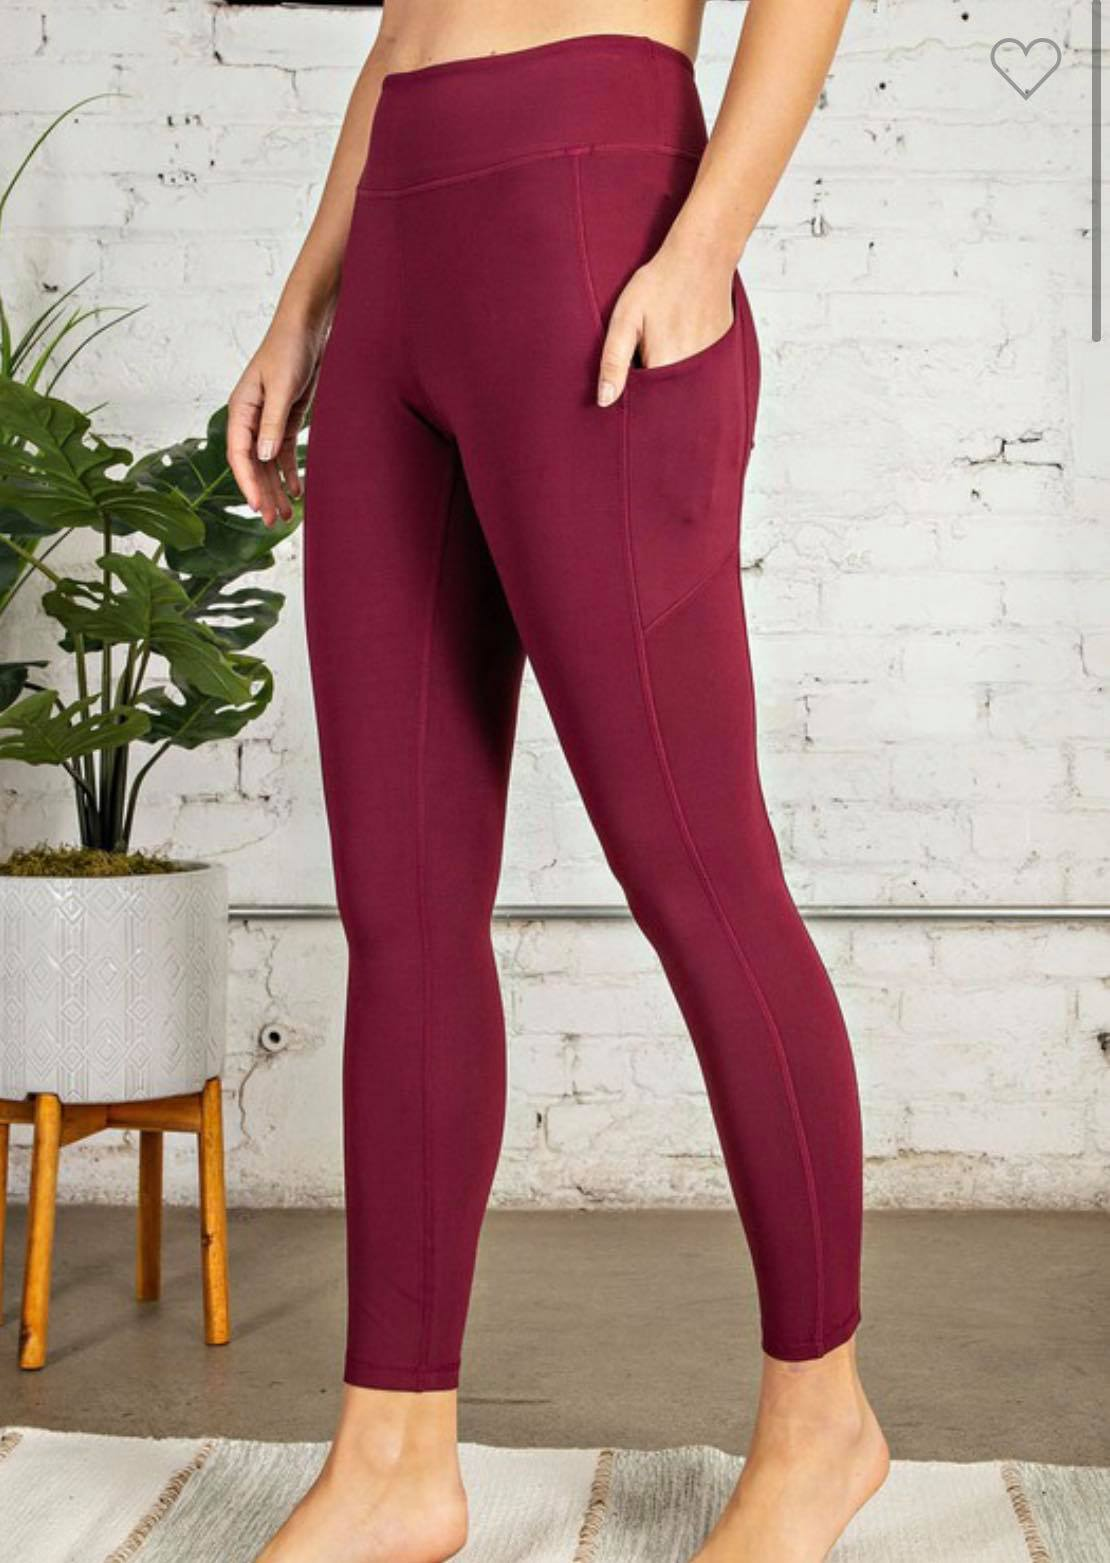 Burgundy Buttery Soft Leggings with Pockets